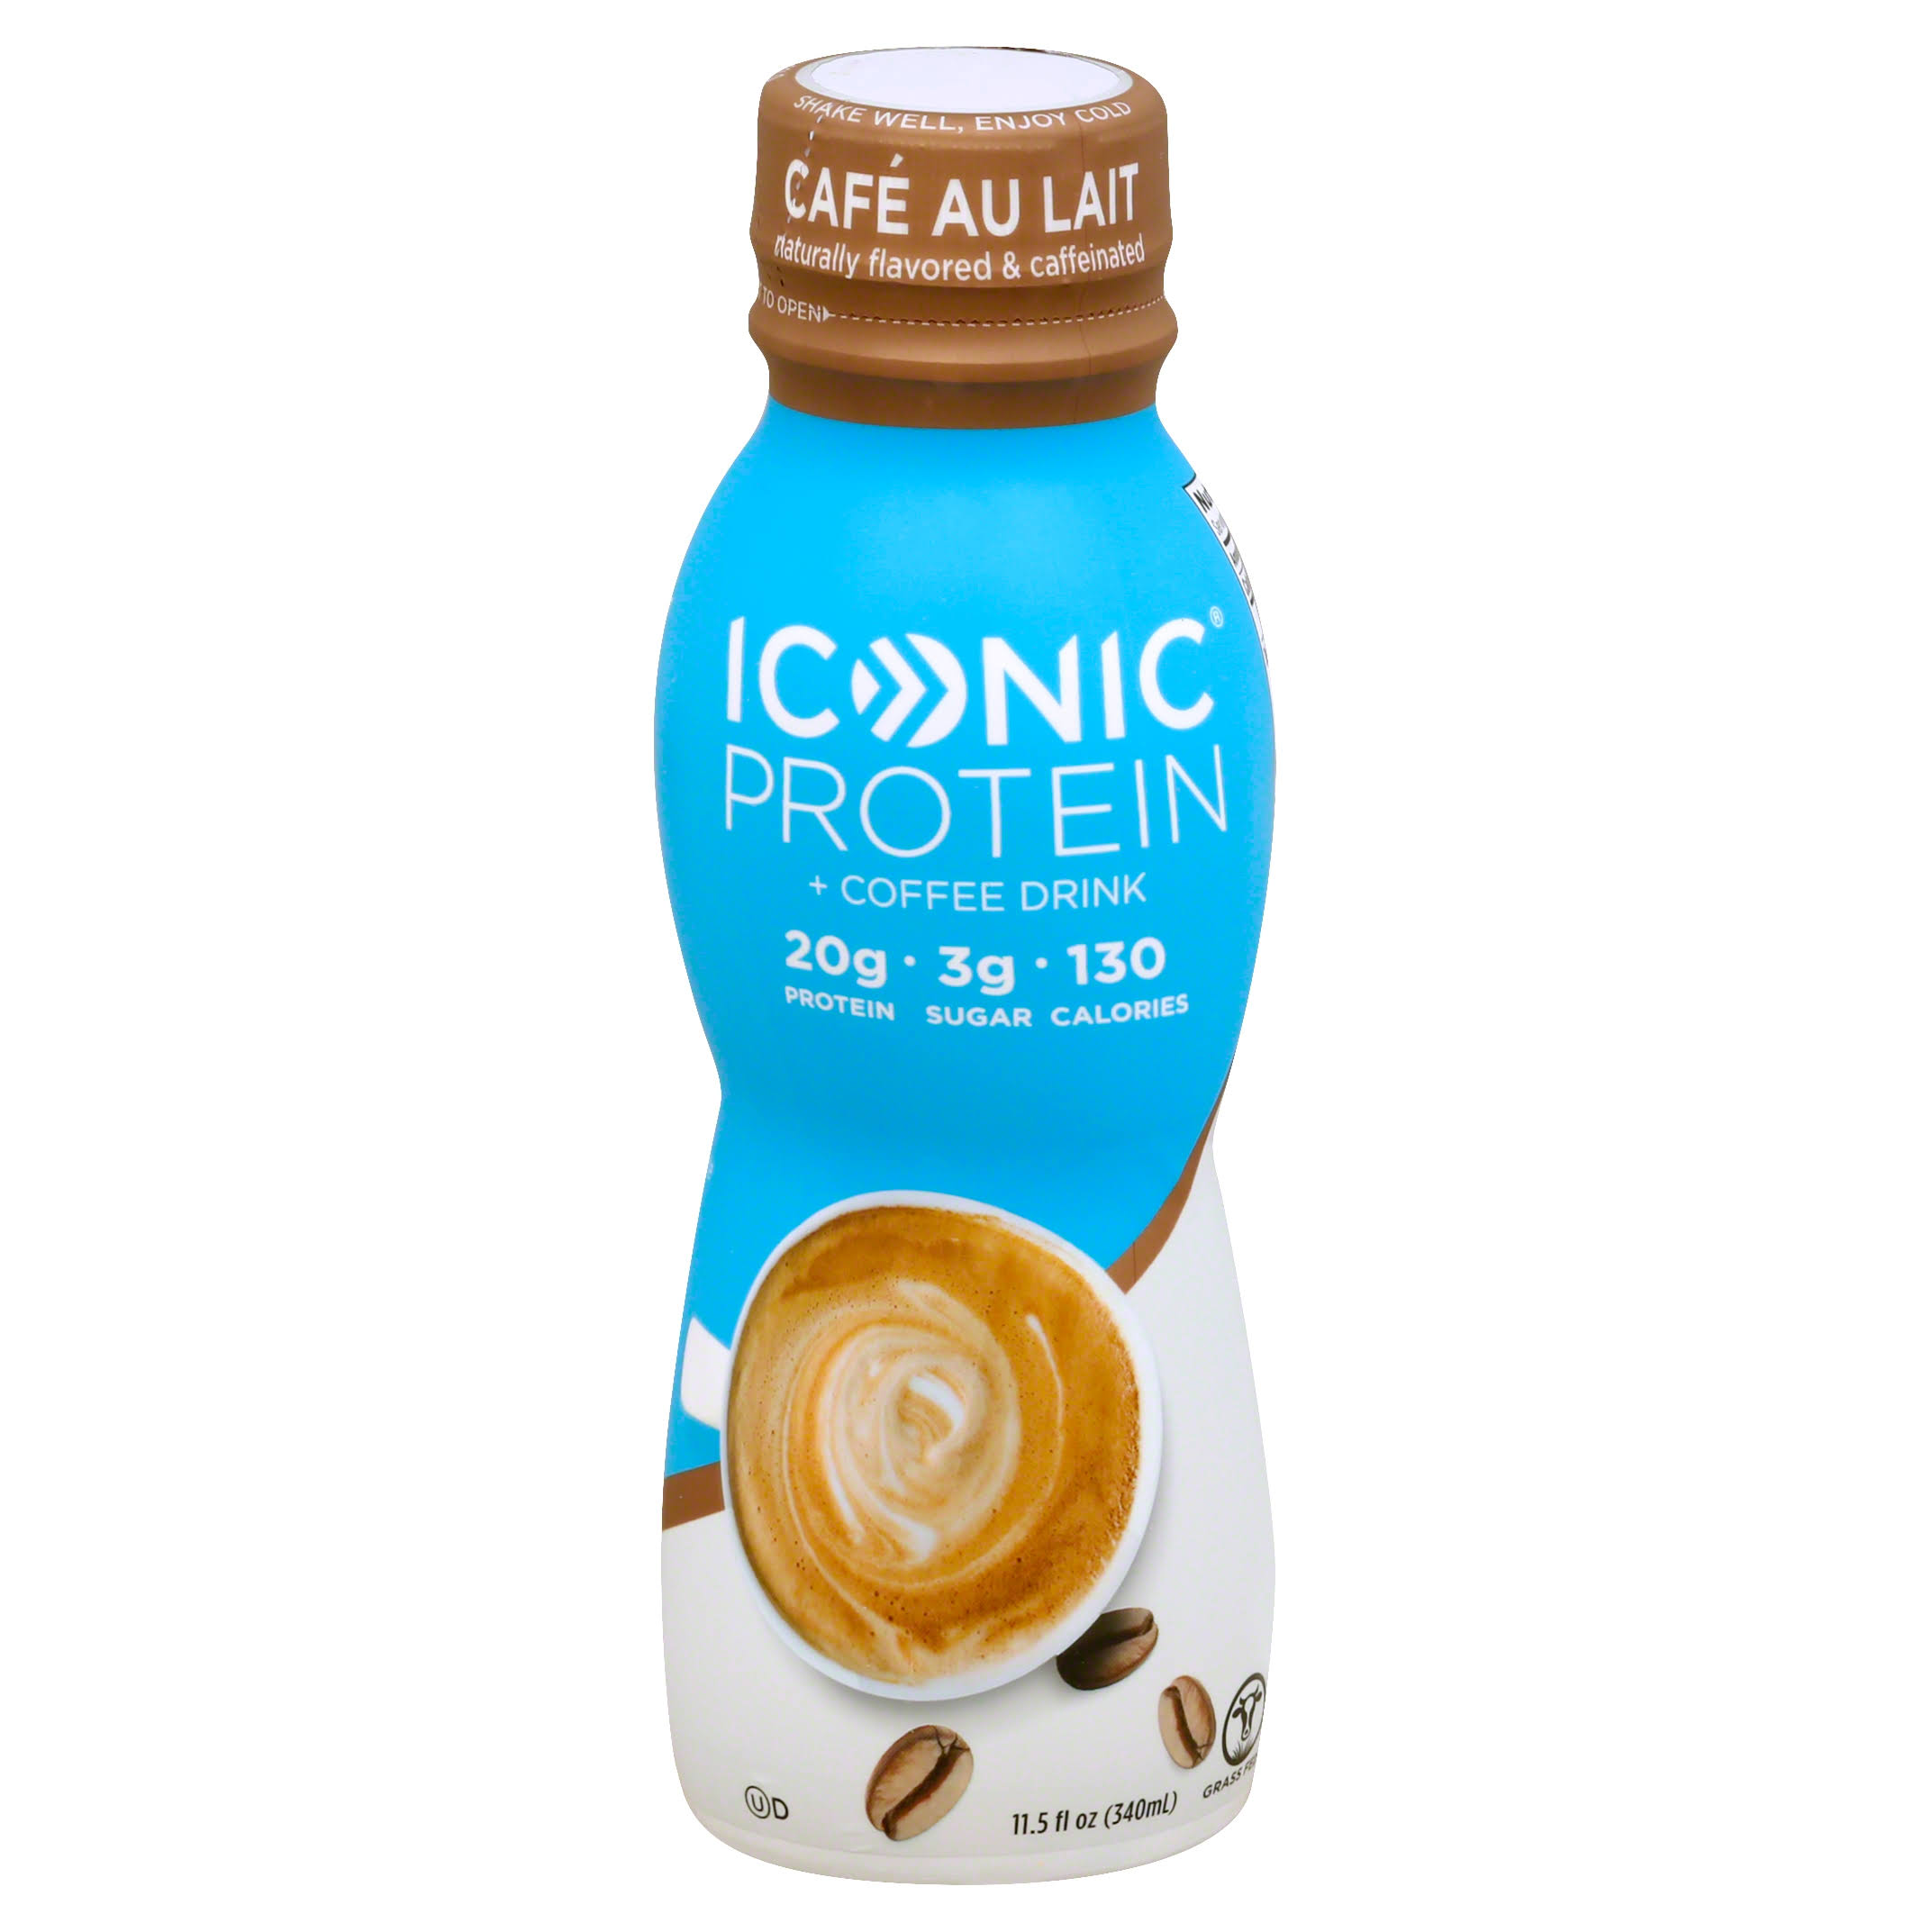 Iconic Protein Coffee Drink - 340ml